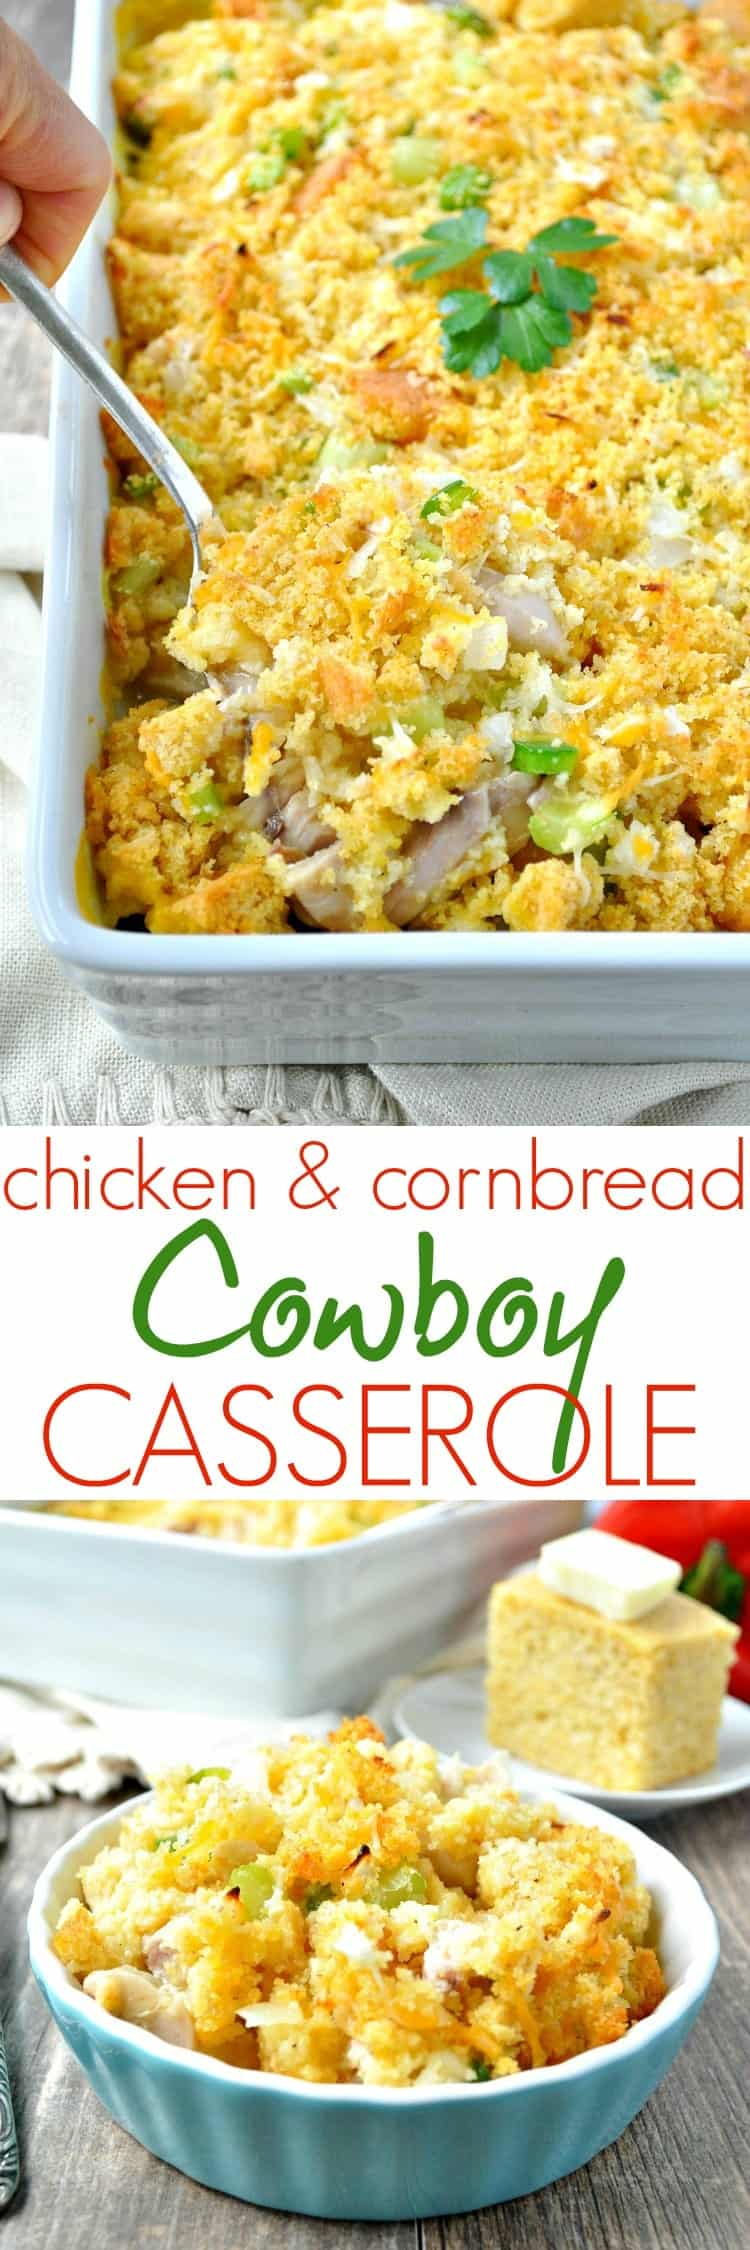 Leftover Cornbread Recipes / 10 Best Leftover Cornbread Recipes : If you happen to have any ...